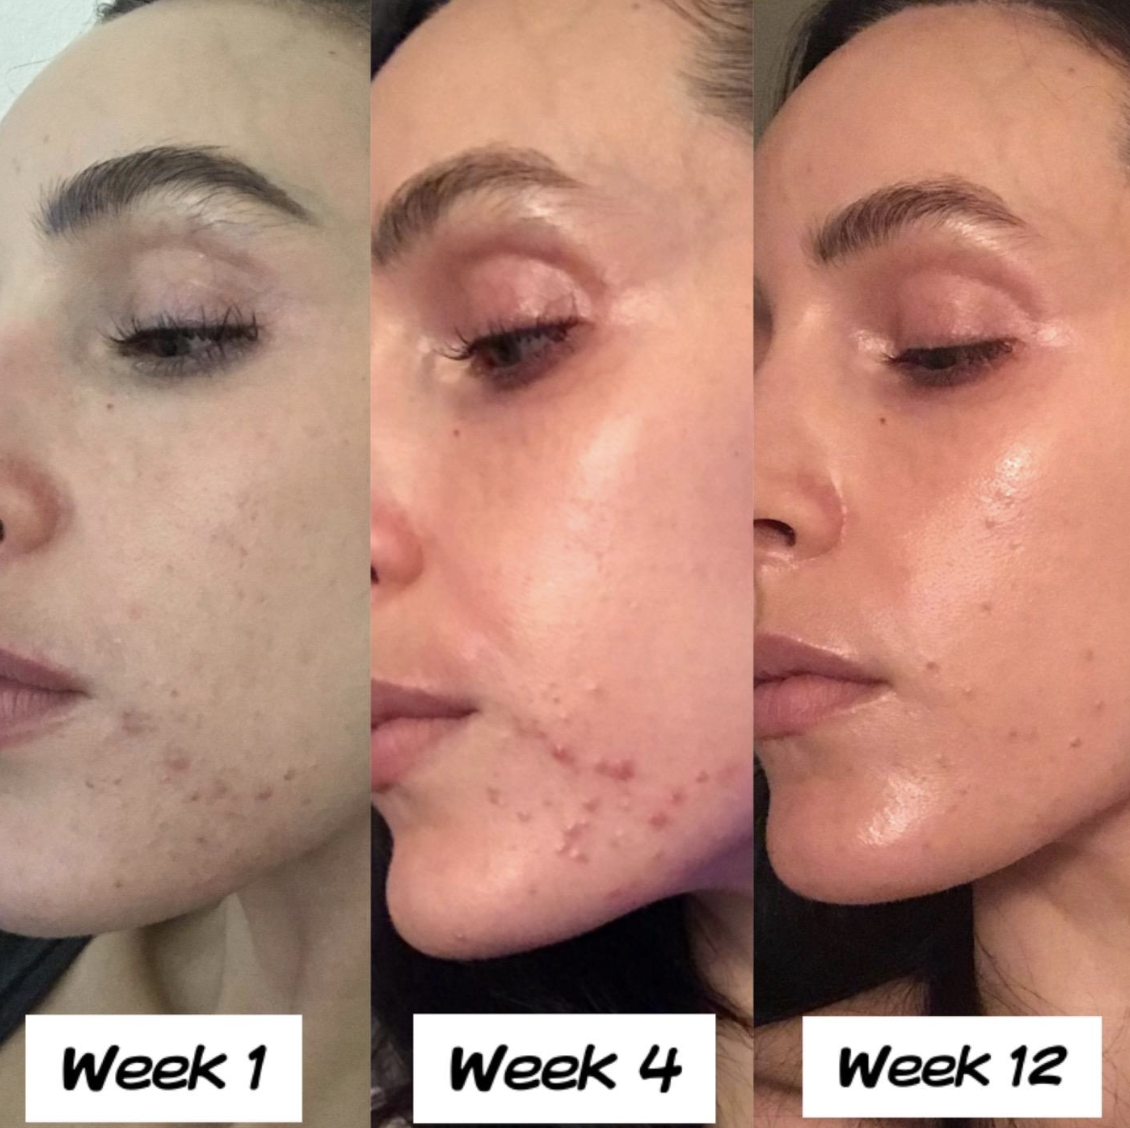 reviewer showing week 1, week 4, and week 12 using product with acne becoming visibly less apparent in each picture